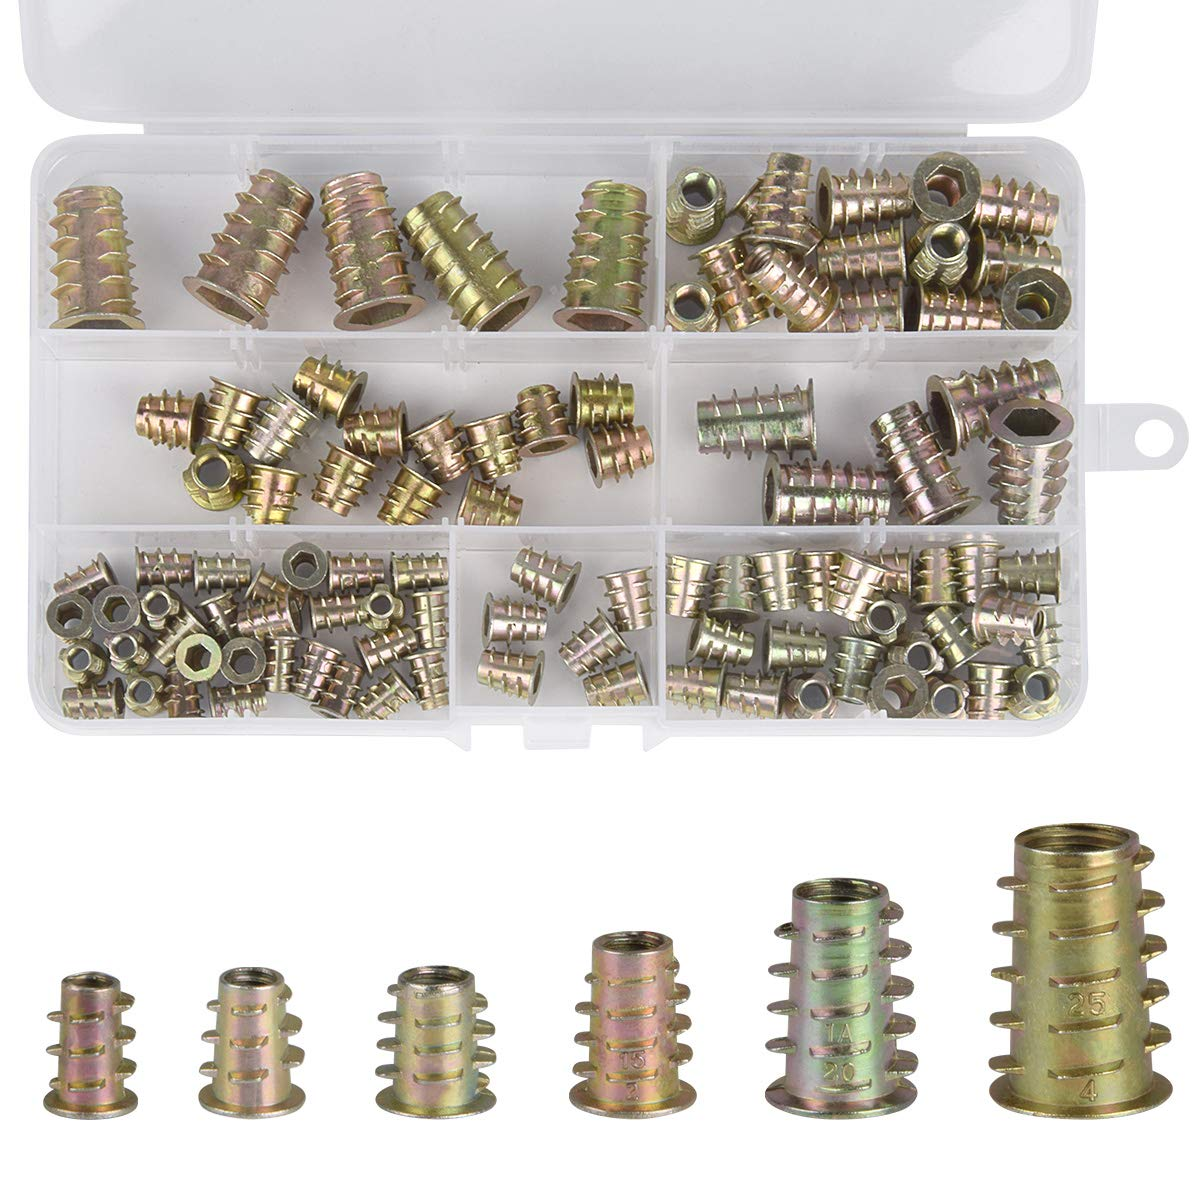 Hotgod M4 M5 M6 M8 M10 Zinc Alloy Furniture Hex Socket Screw Inserts Threaded Insert Nuts Assortment Tool Kit for Wood Furniture, 100Pcs